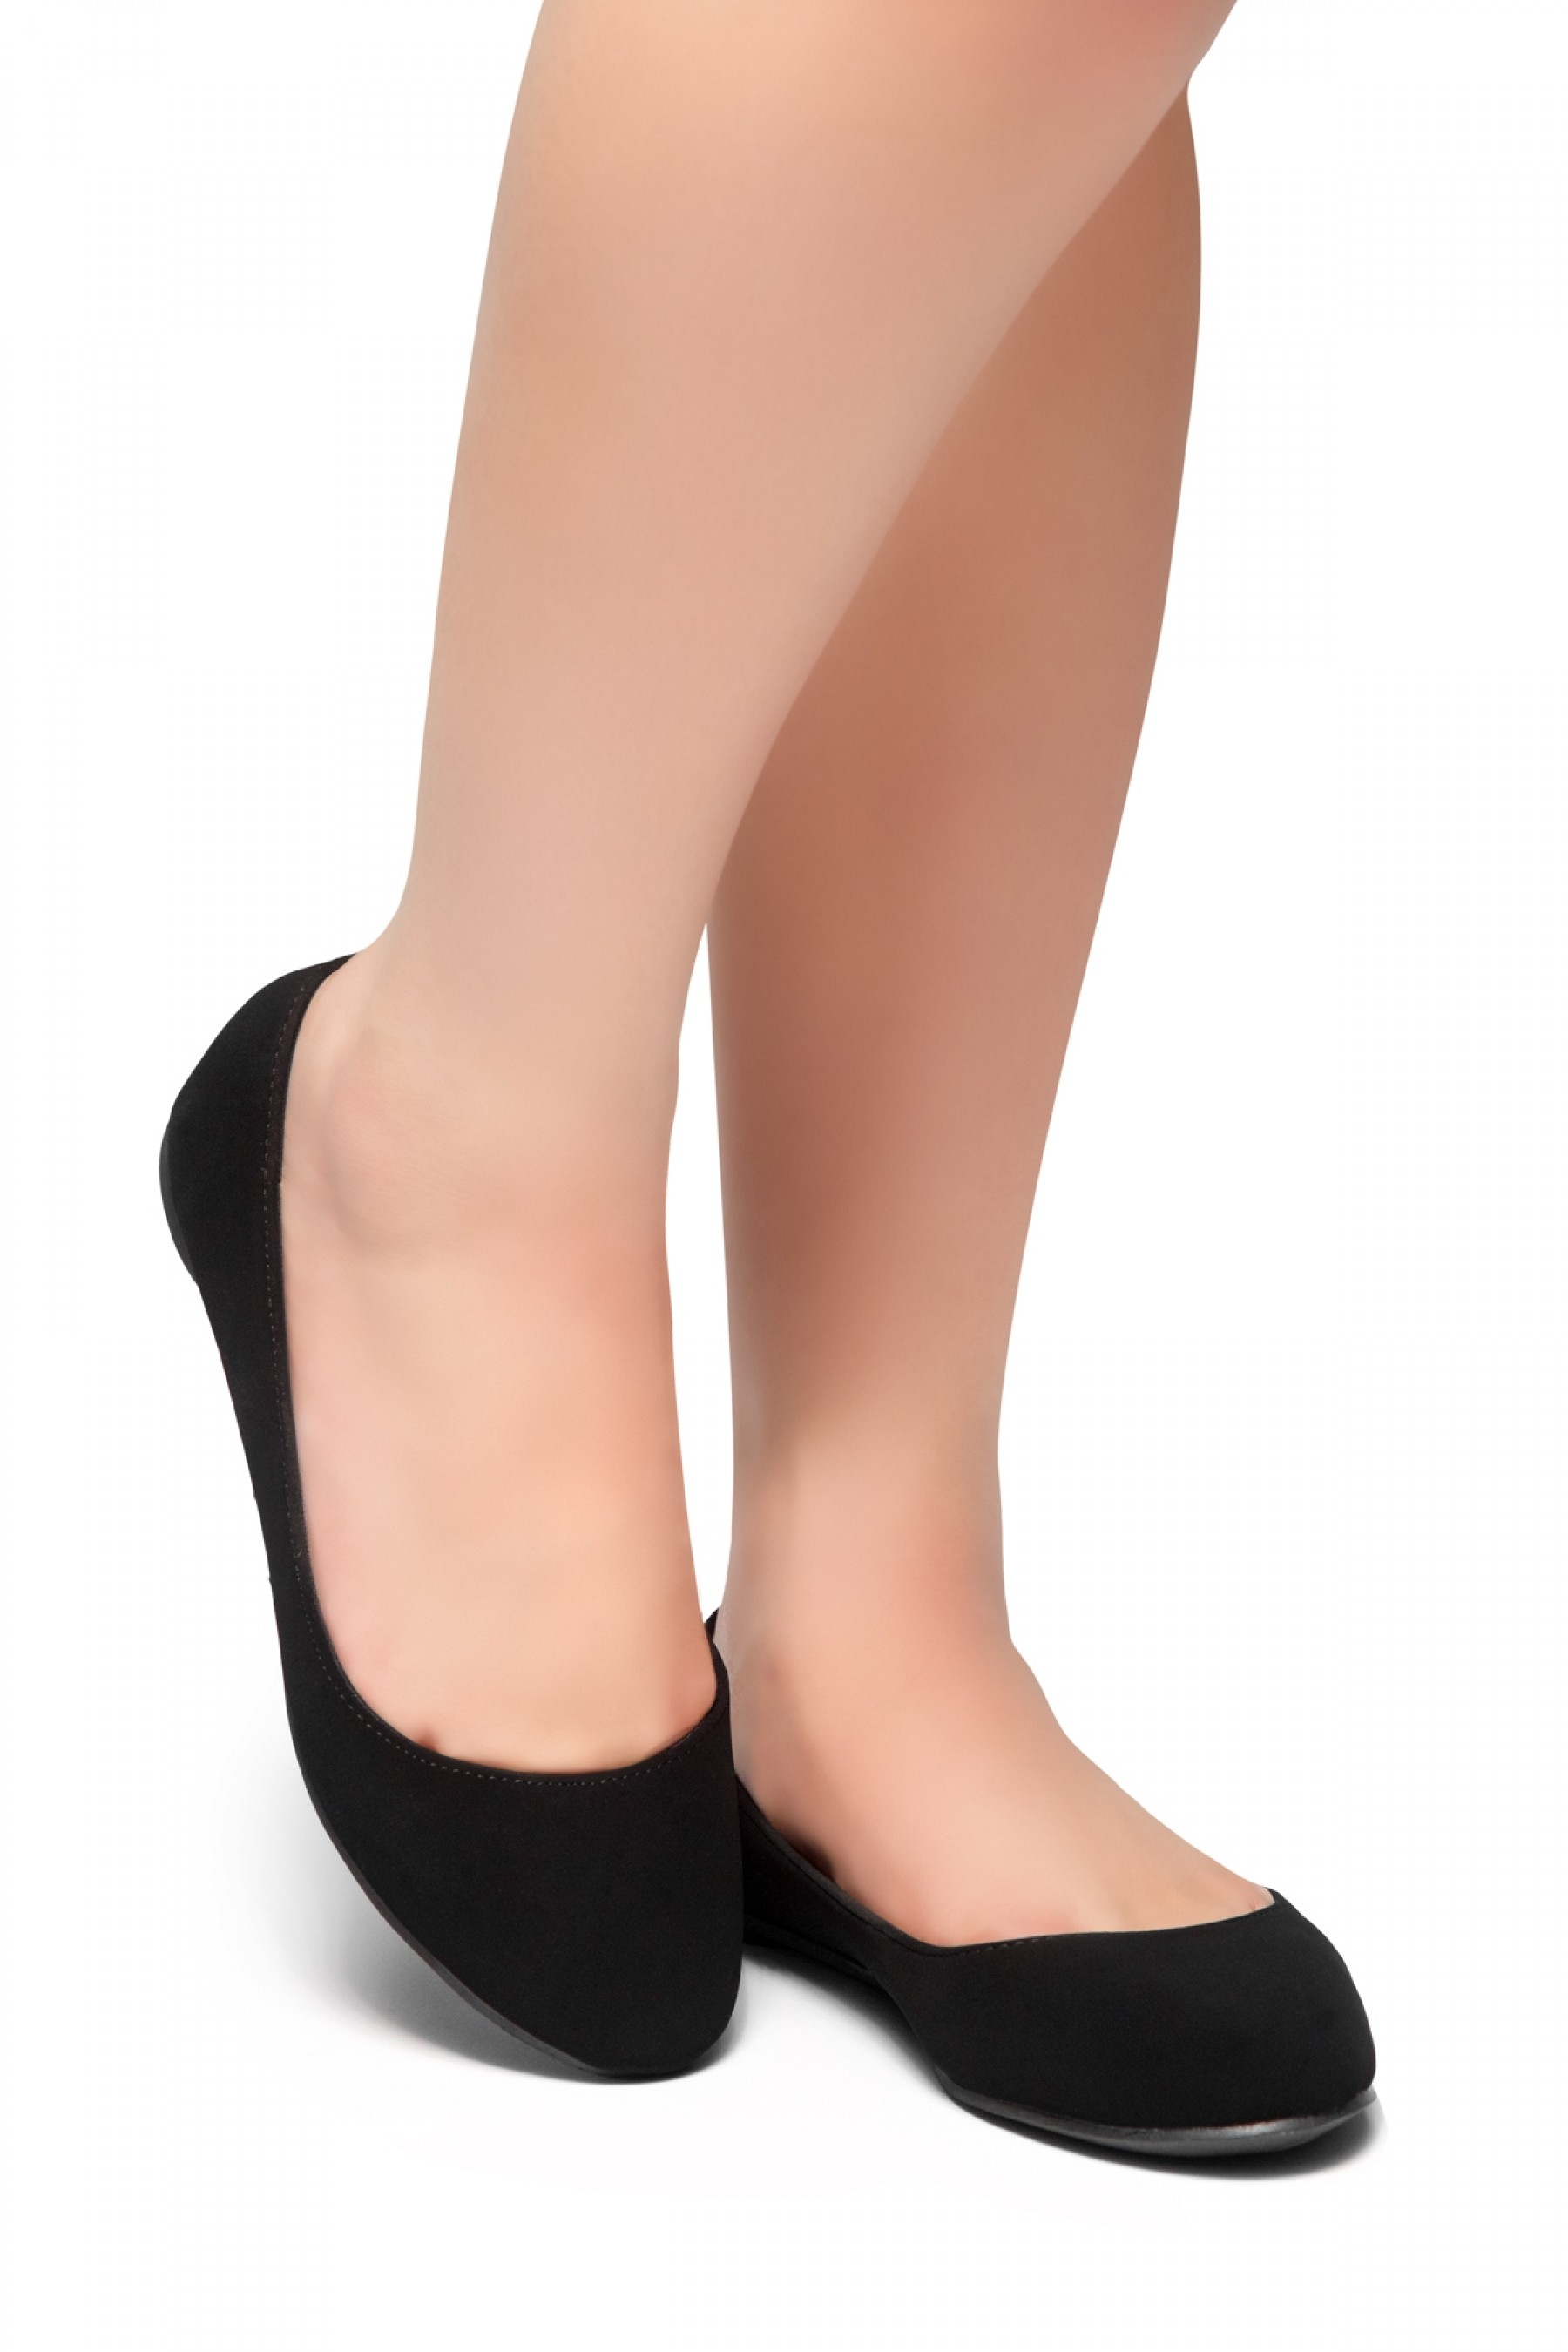 HerStyle New Memory-Round Toe, No detail, Ballet Flat (Black)